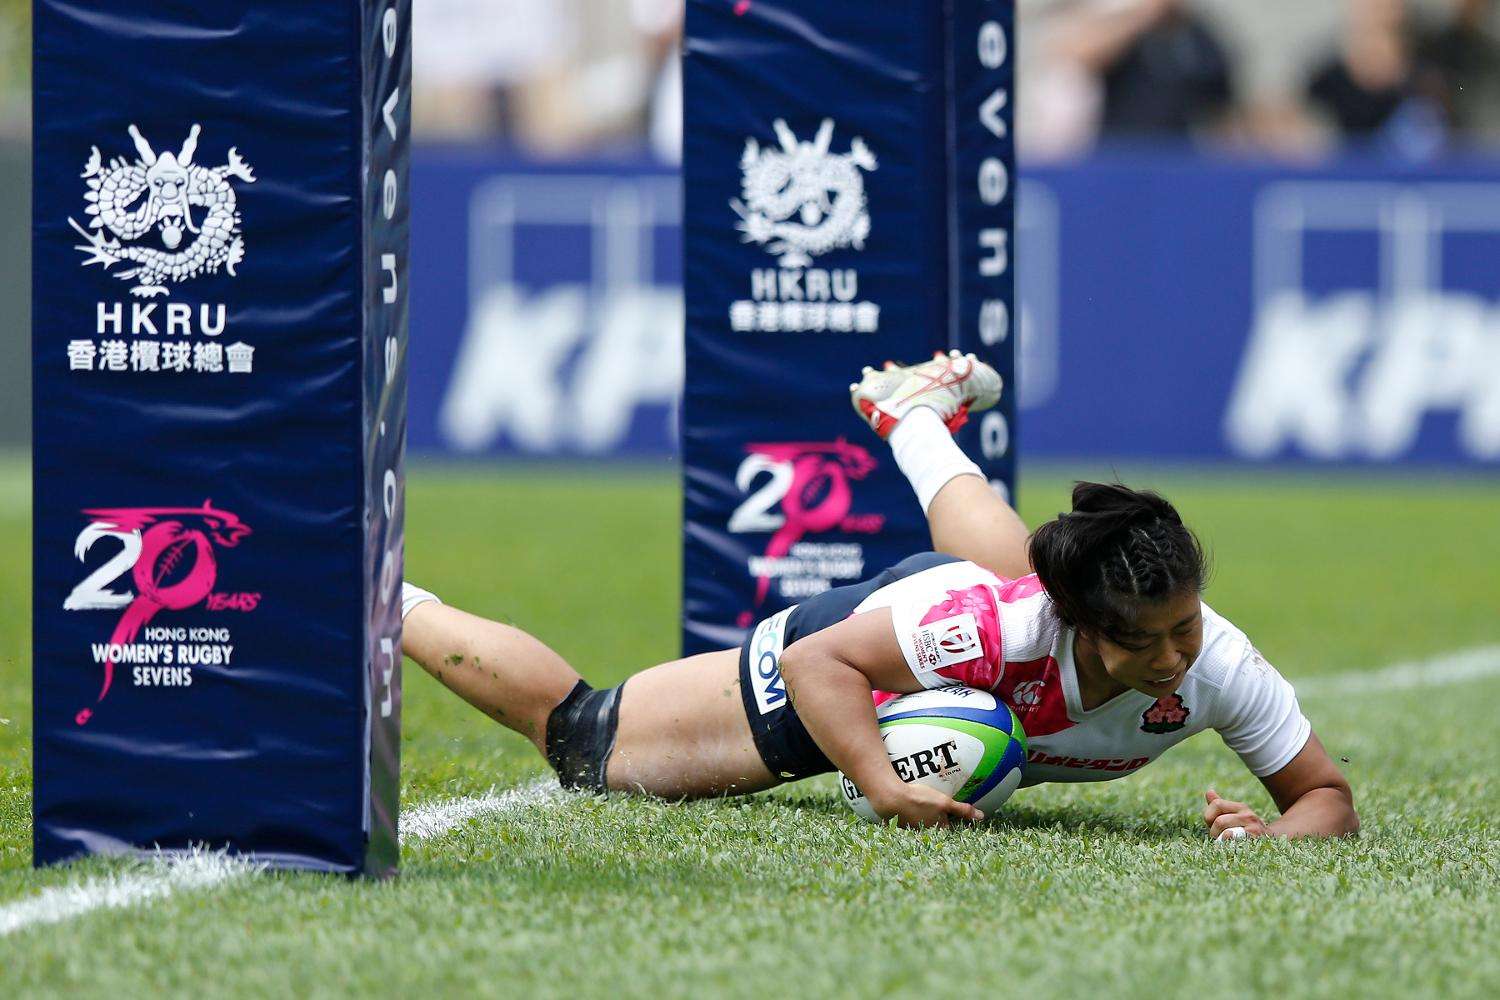 World Rugby Sevens Series Qualifier Hong Kong - Women's